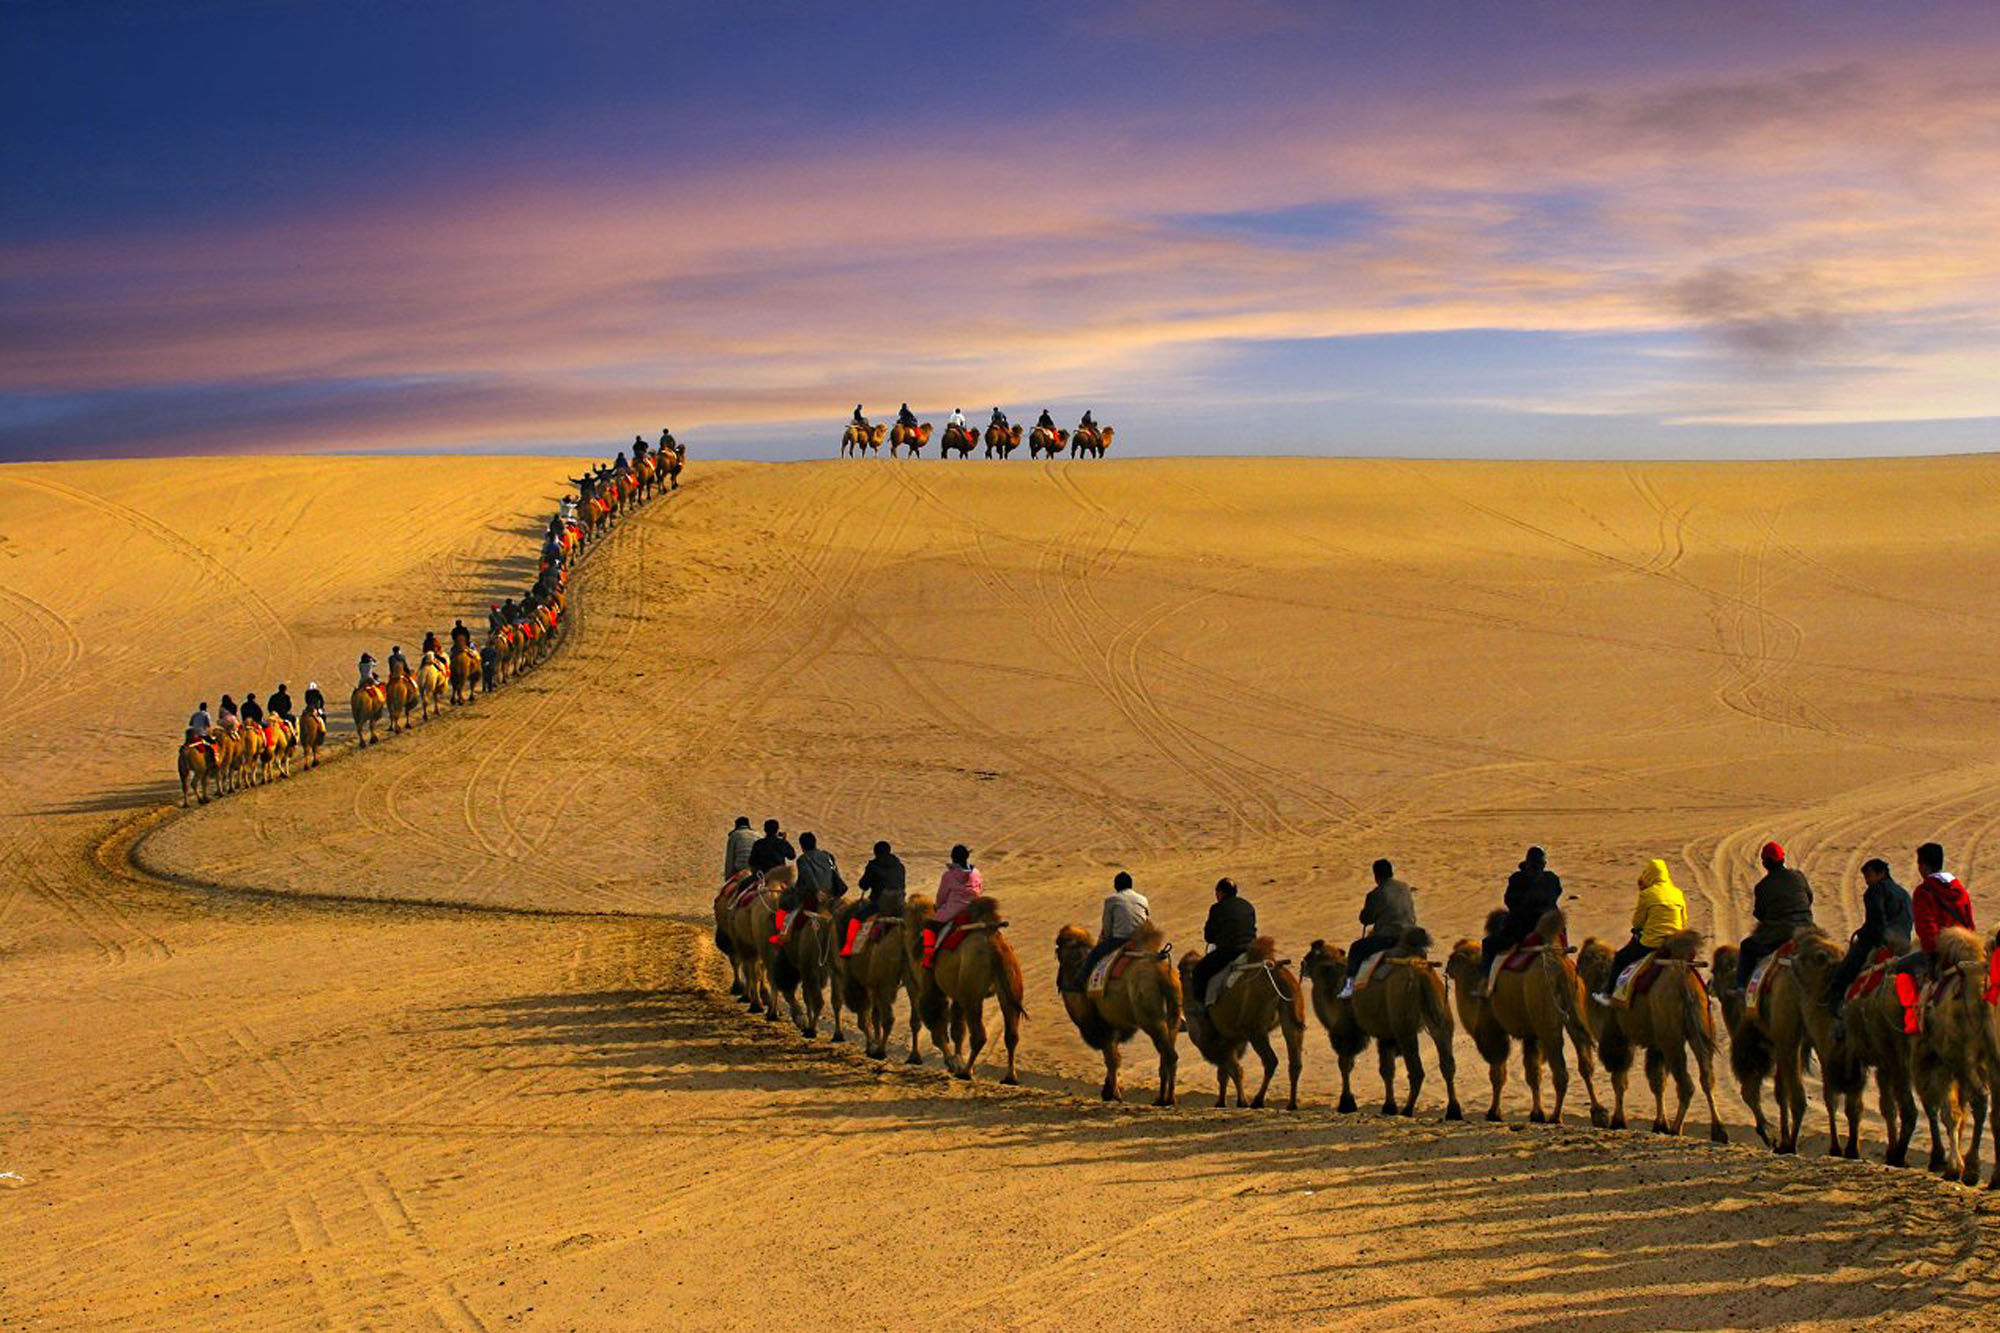 Silk Road Caravans